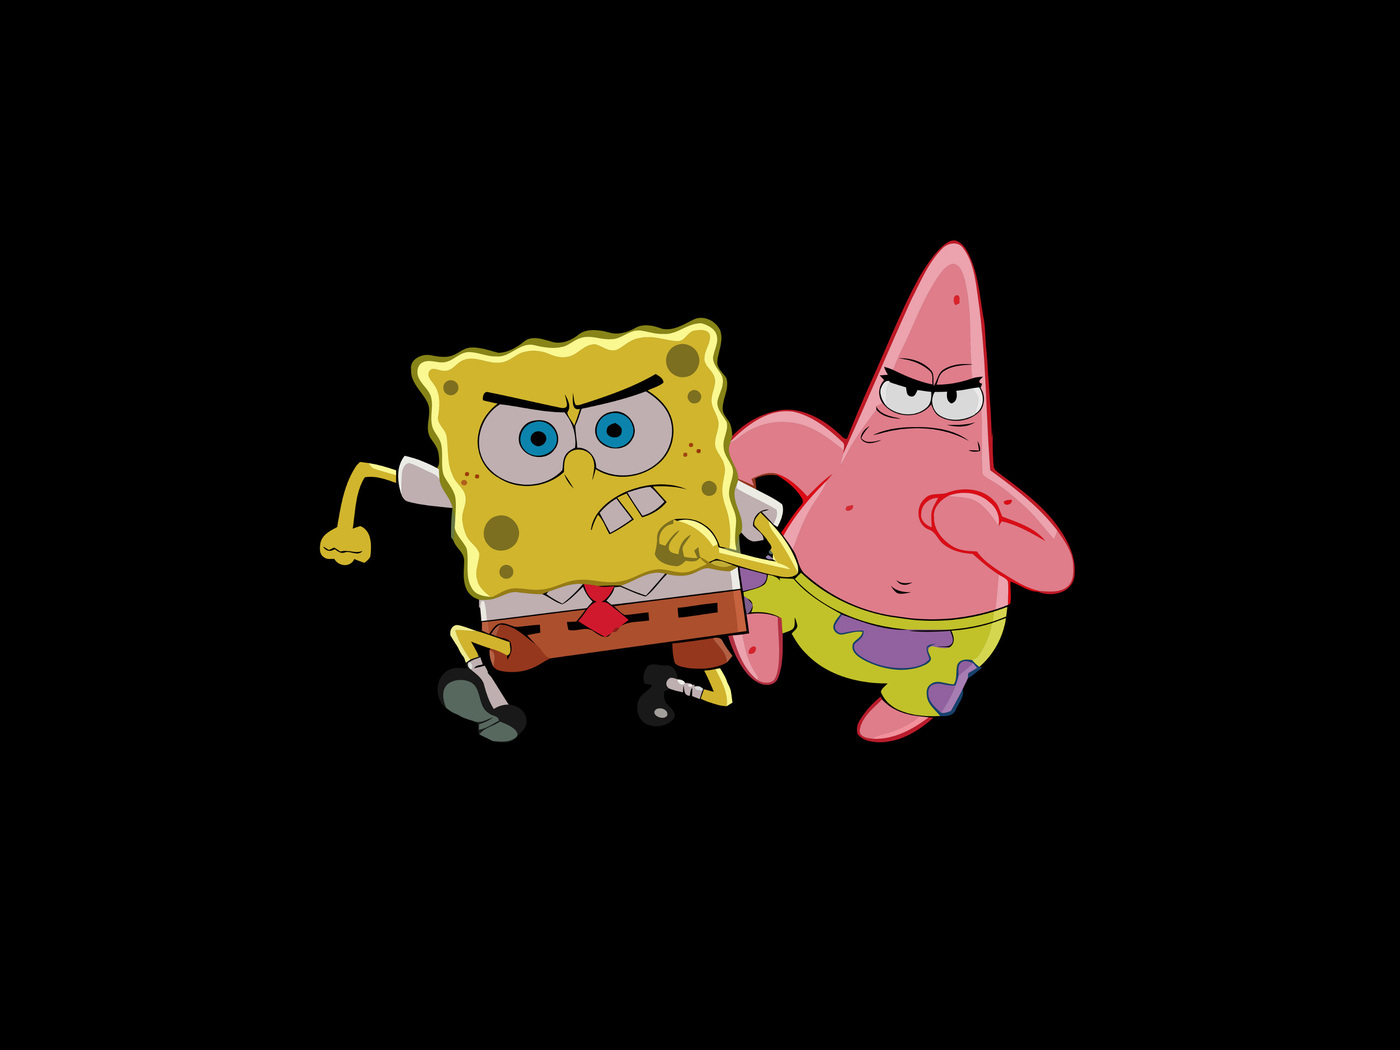 patrick-star-and-spongebob-1c.jpg